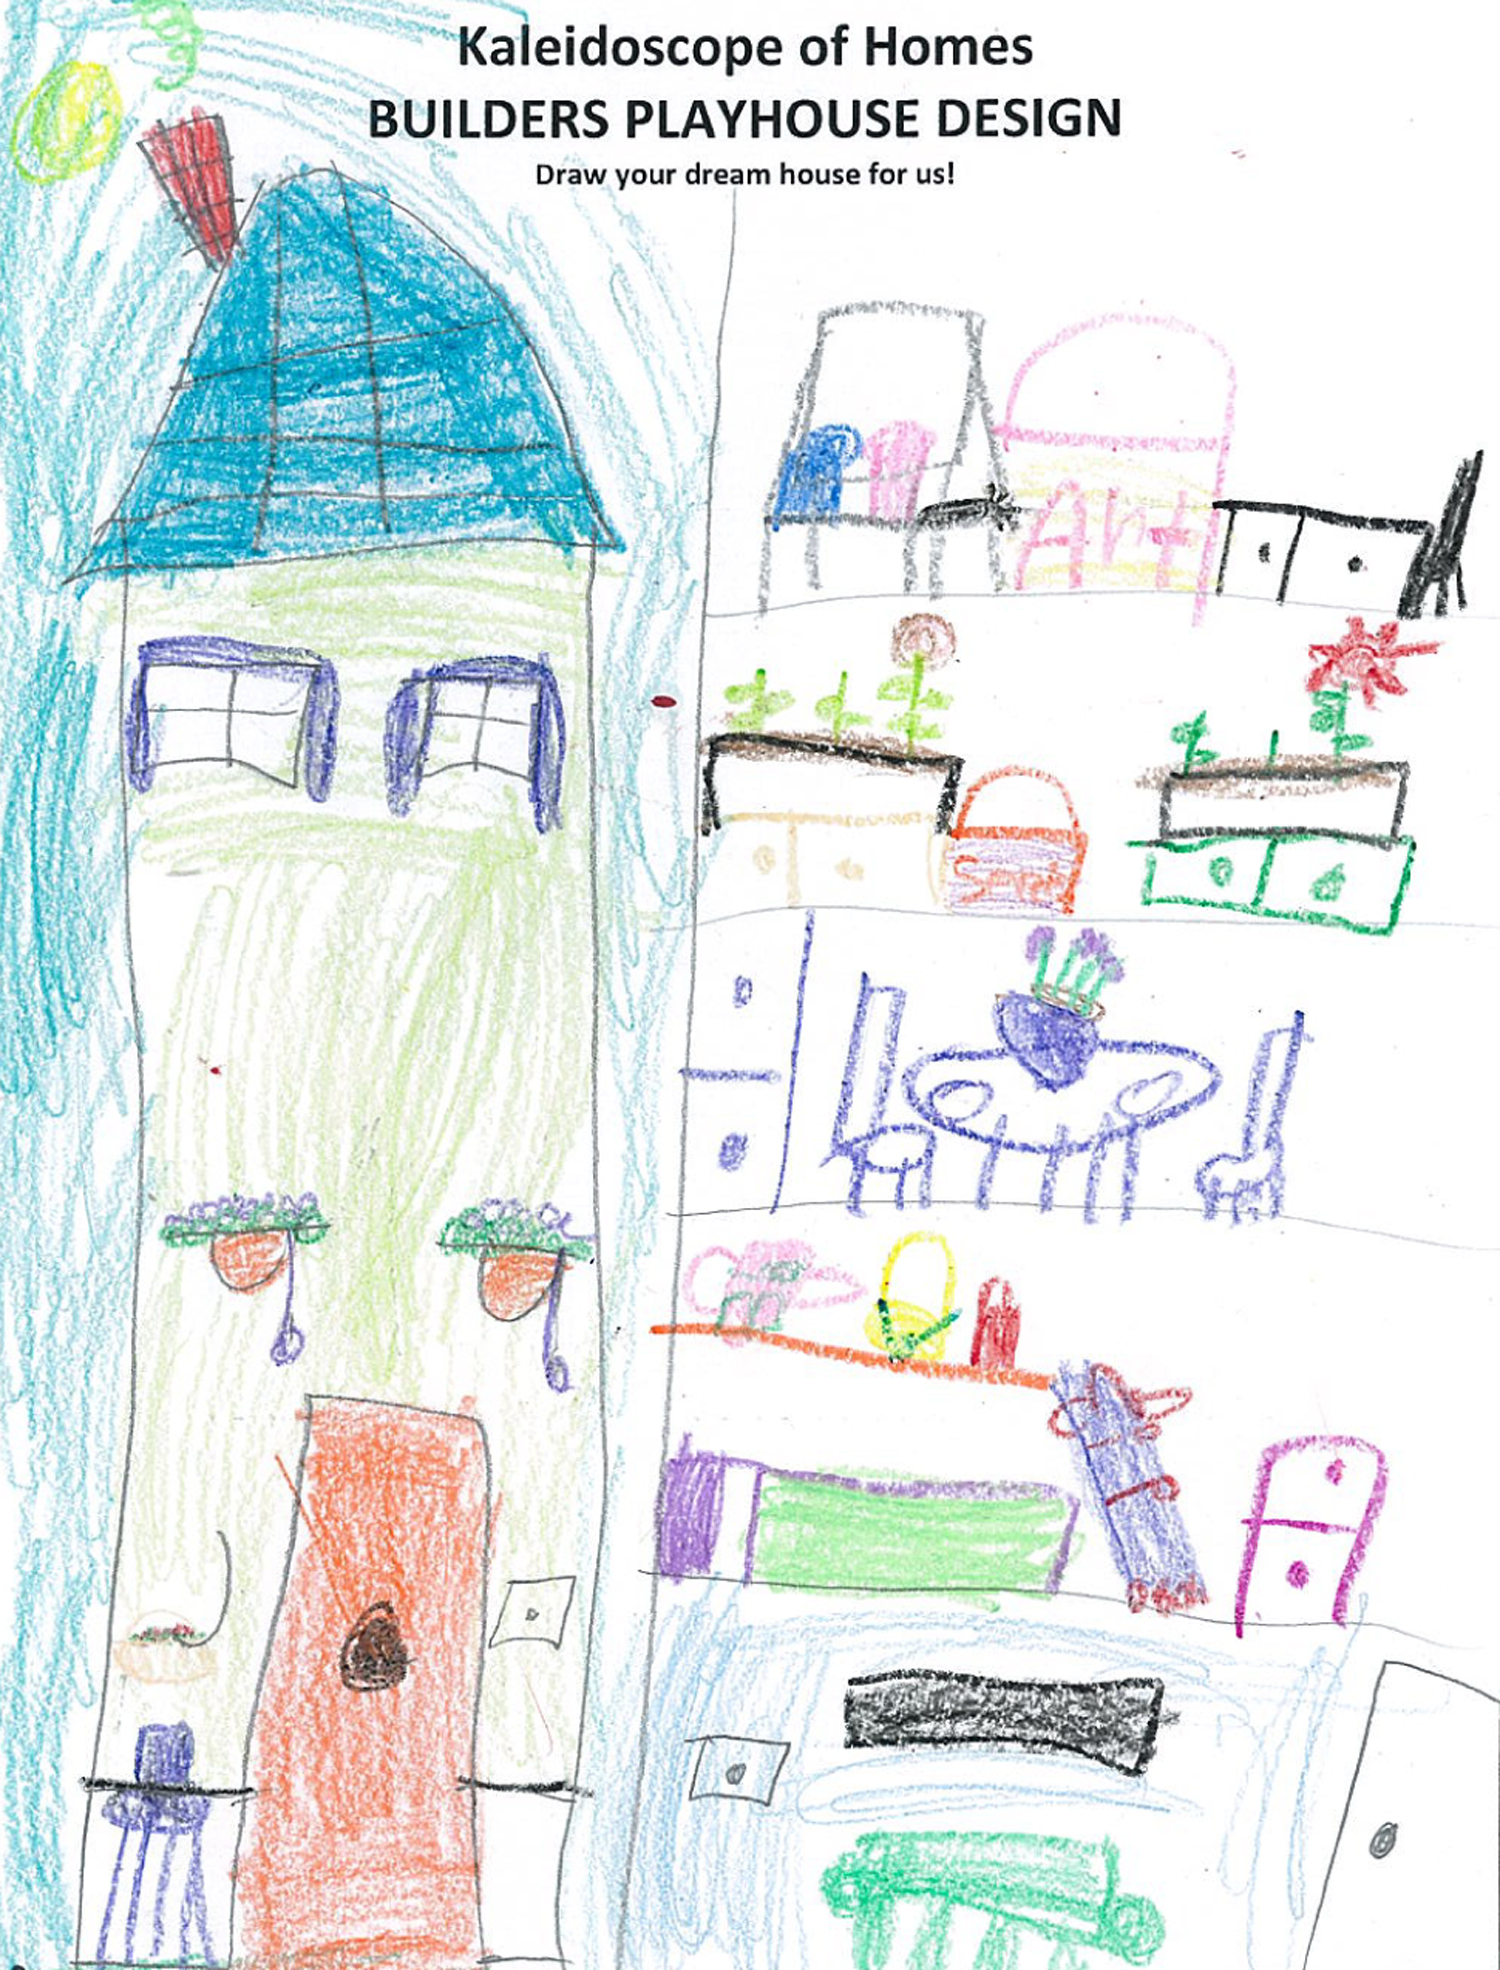 Scottish rite patient s dream house drawing comes to life for My dream house drawing